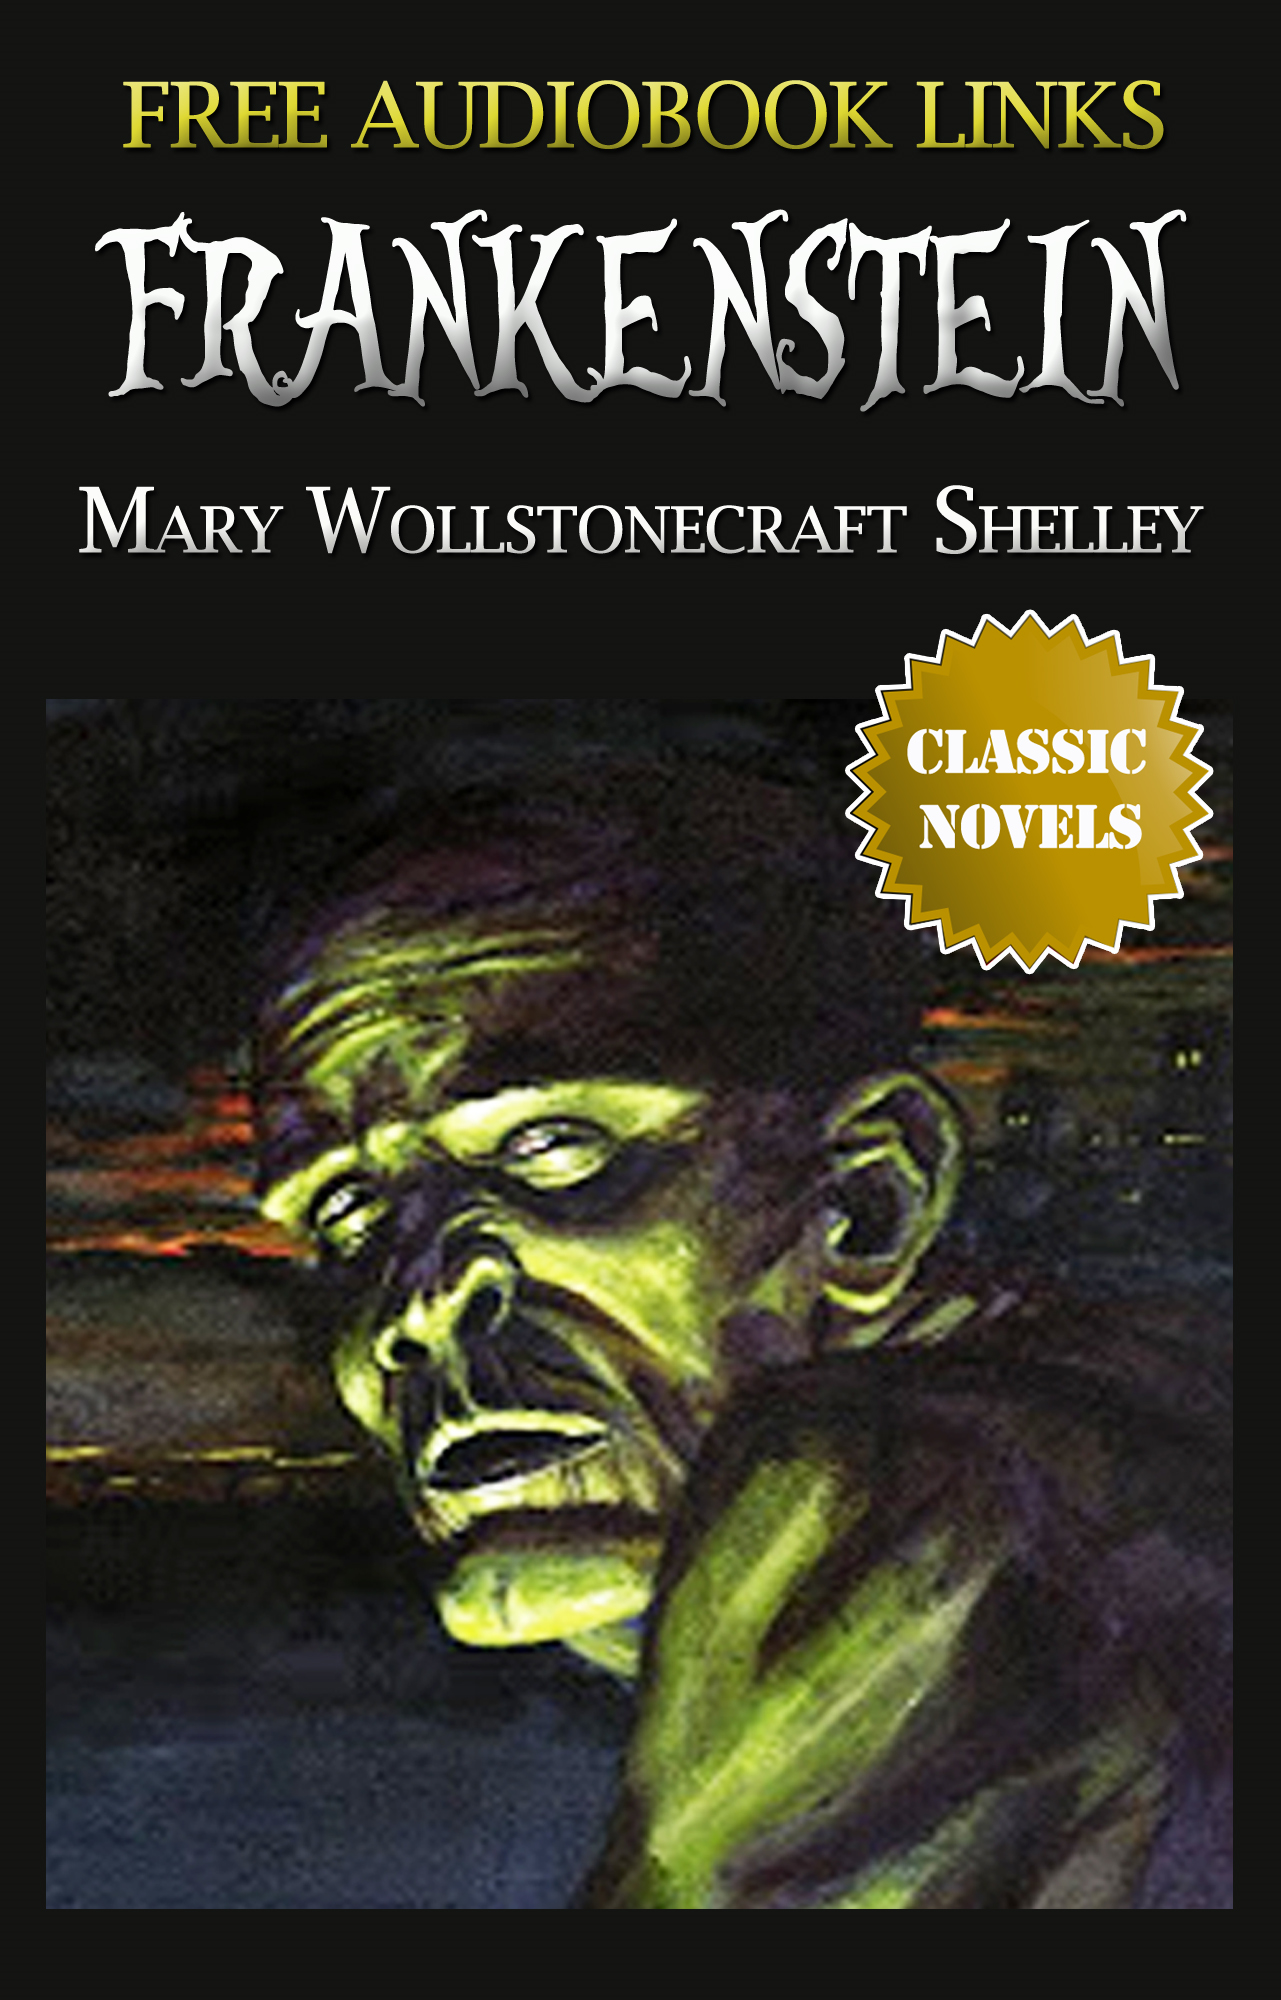 FRANKENSTEIN  Classic Novels: New Illustrated [Free Audiobook Links] By: Mary Wollstonecraft Shelley